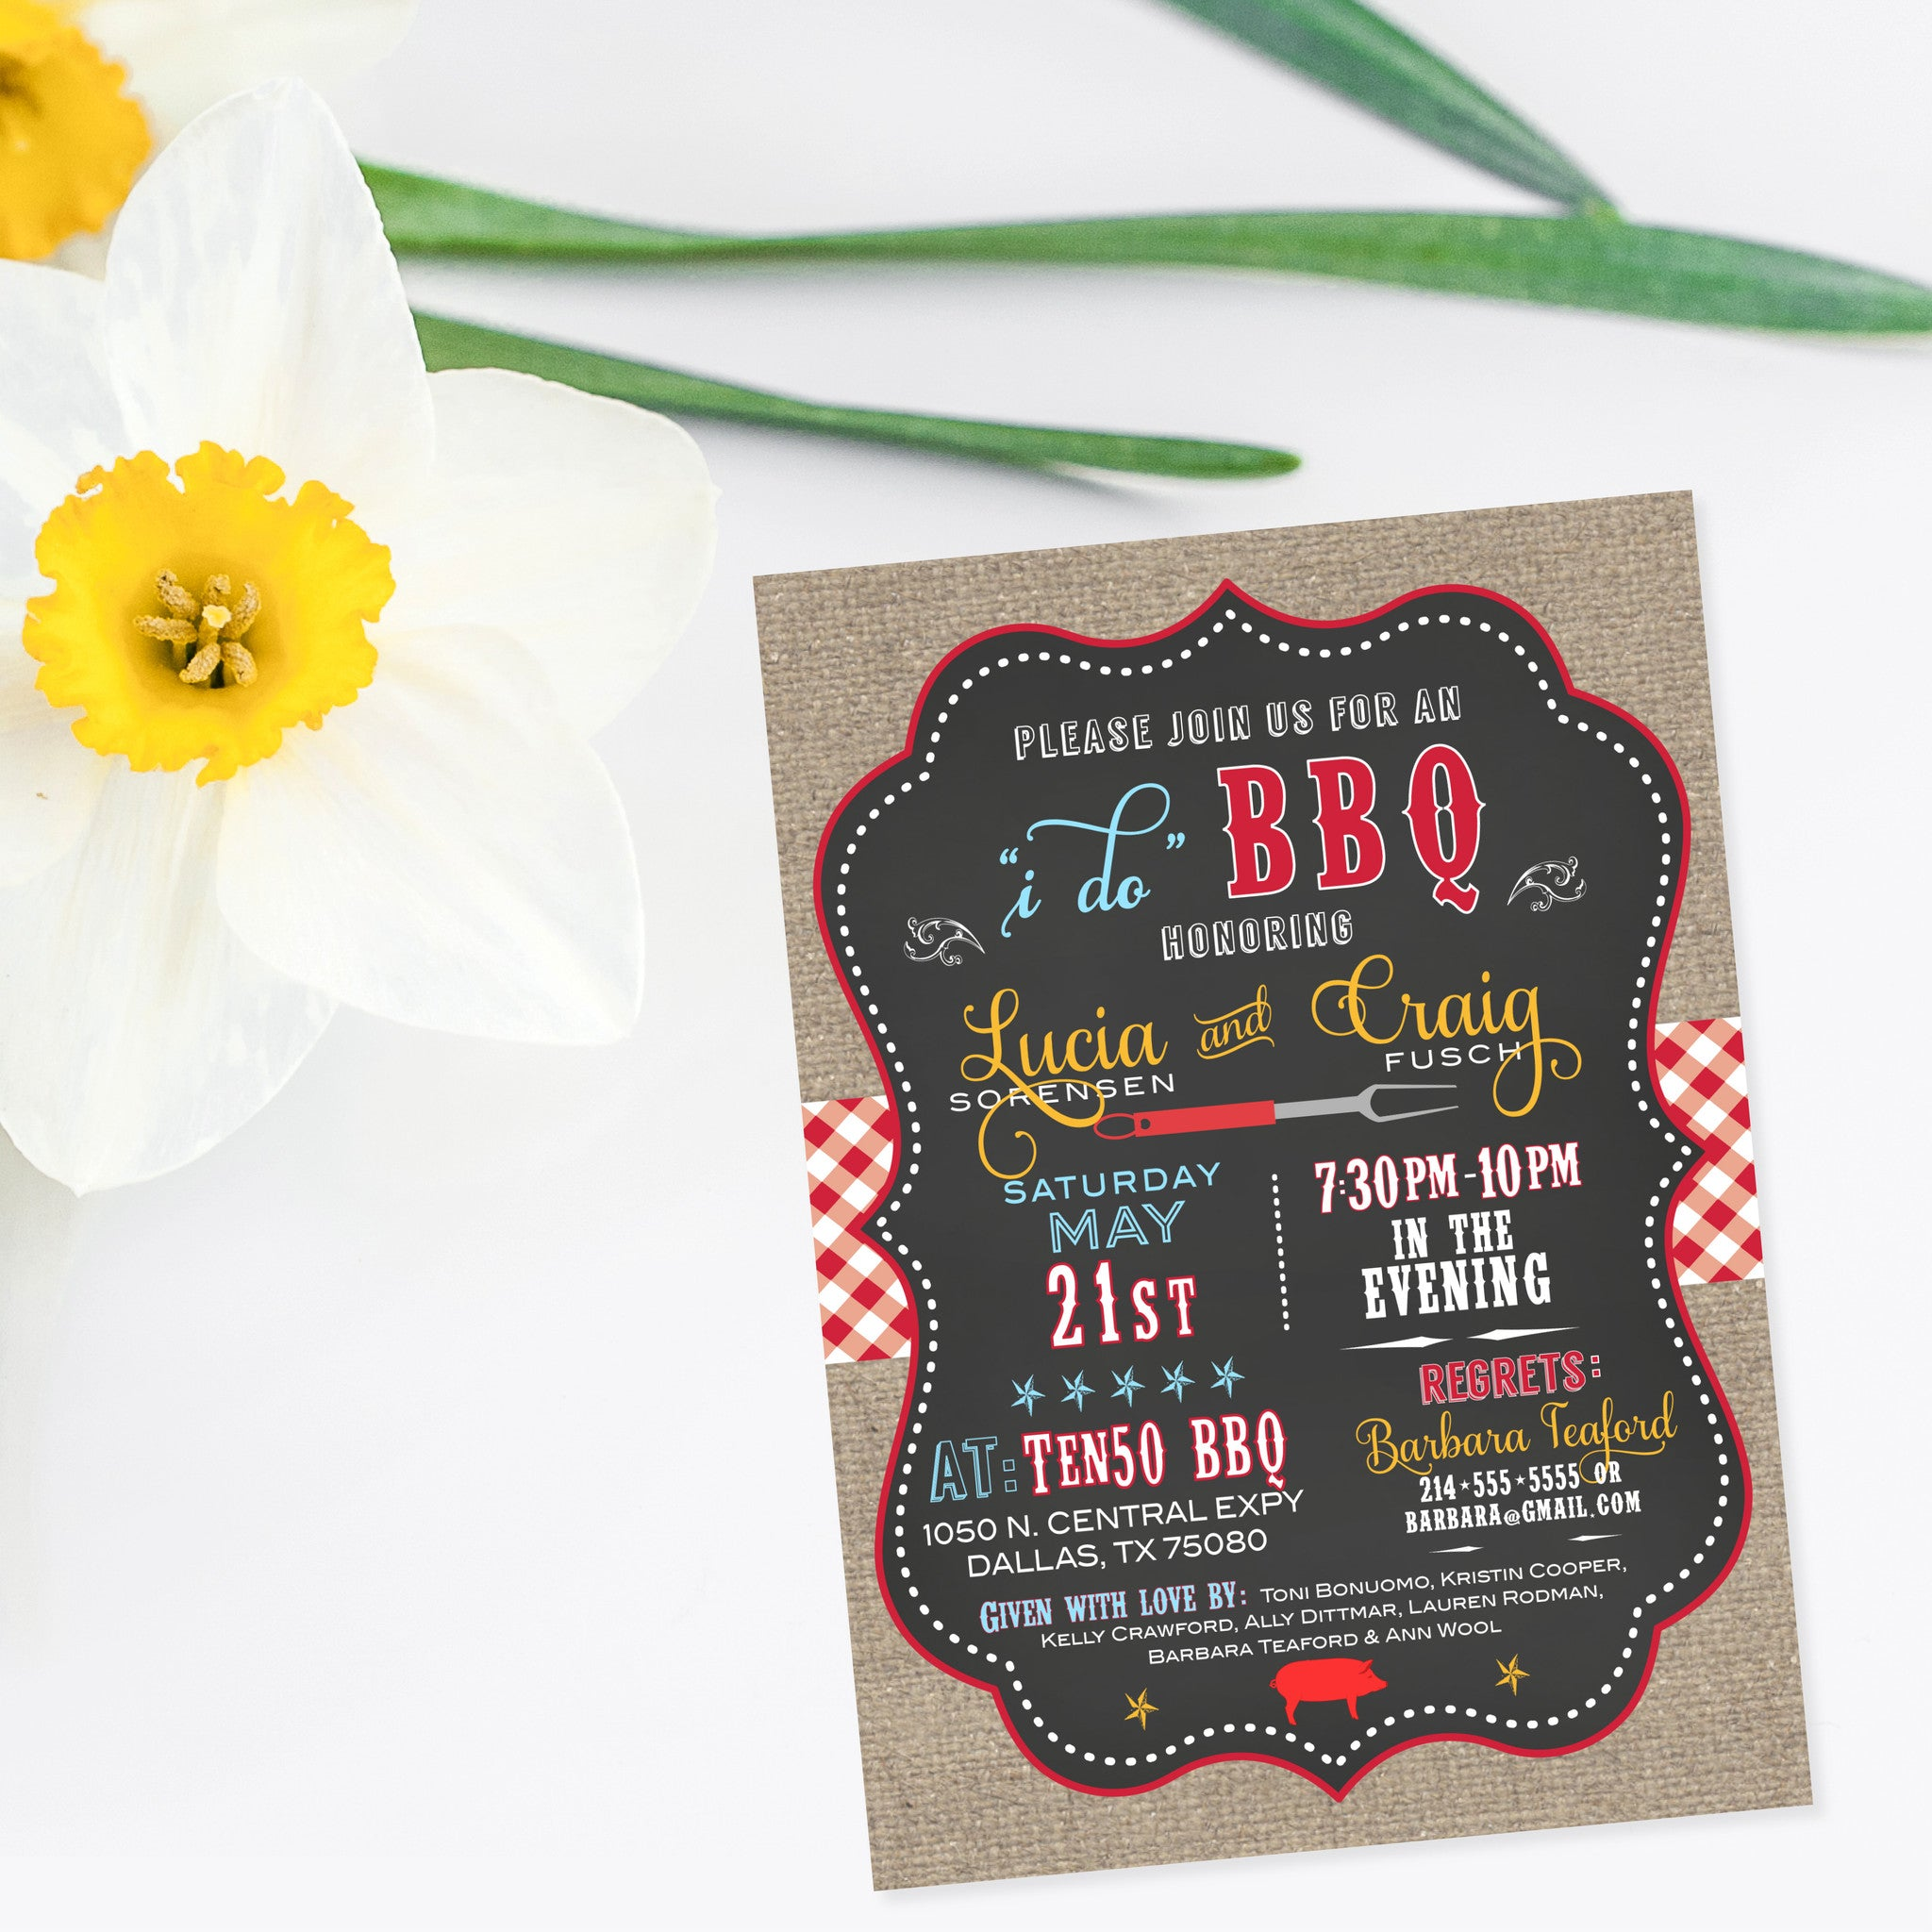 Engagement Party Invitations and Save the Dates - Southern Sociable